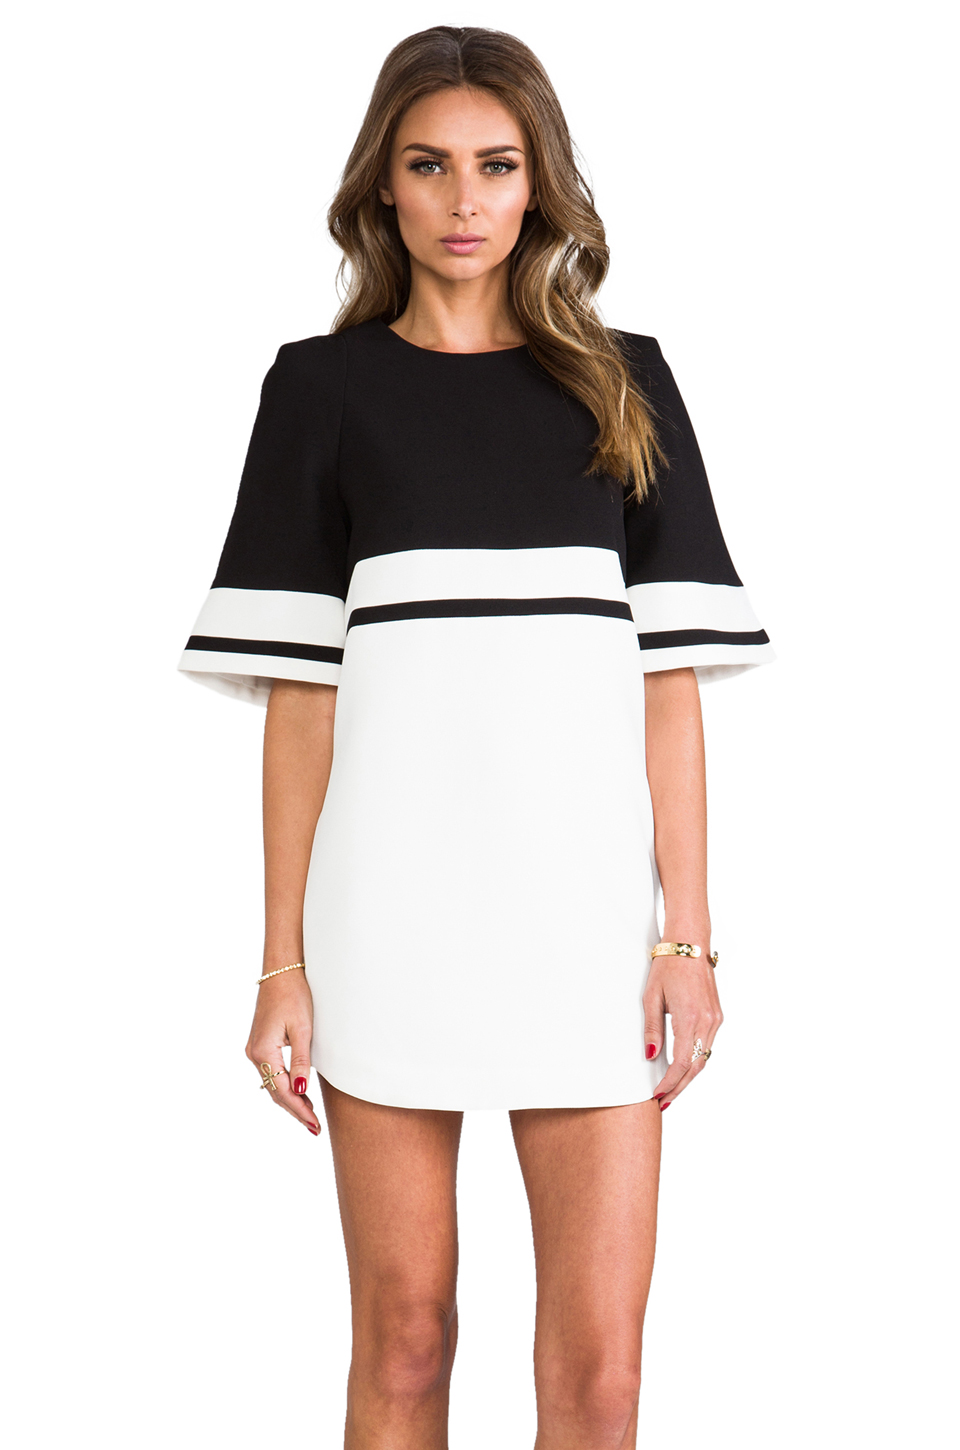 Cameo We Are Young Dress in Black & White | REVOLVE